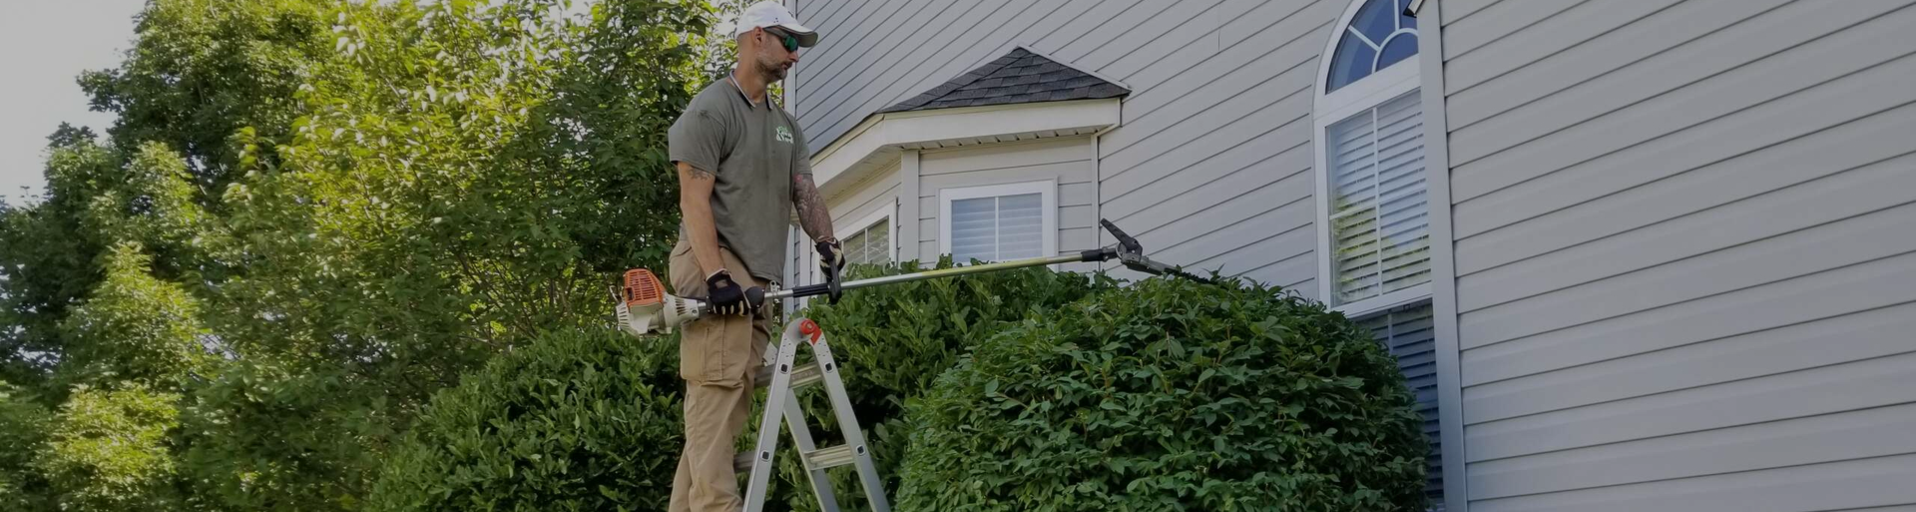 jersey lawn and yard employee trimming shrubs